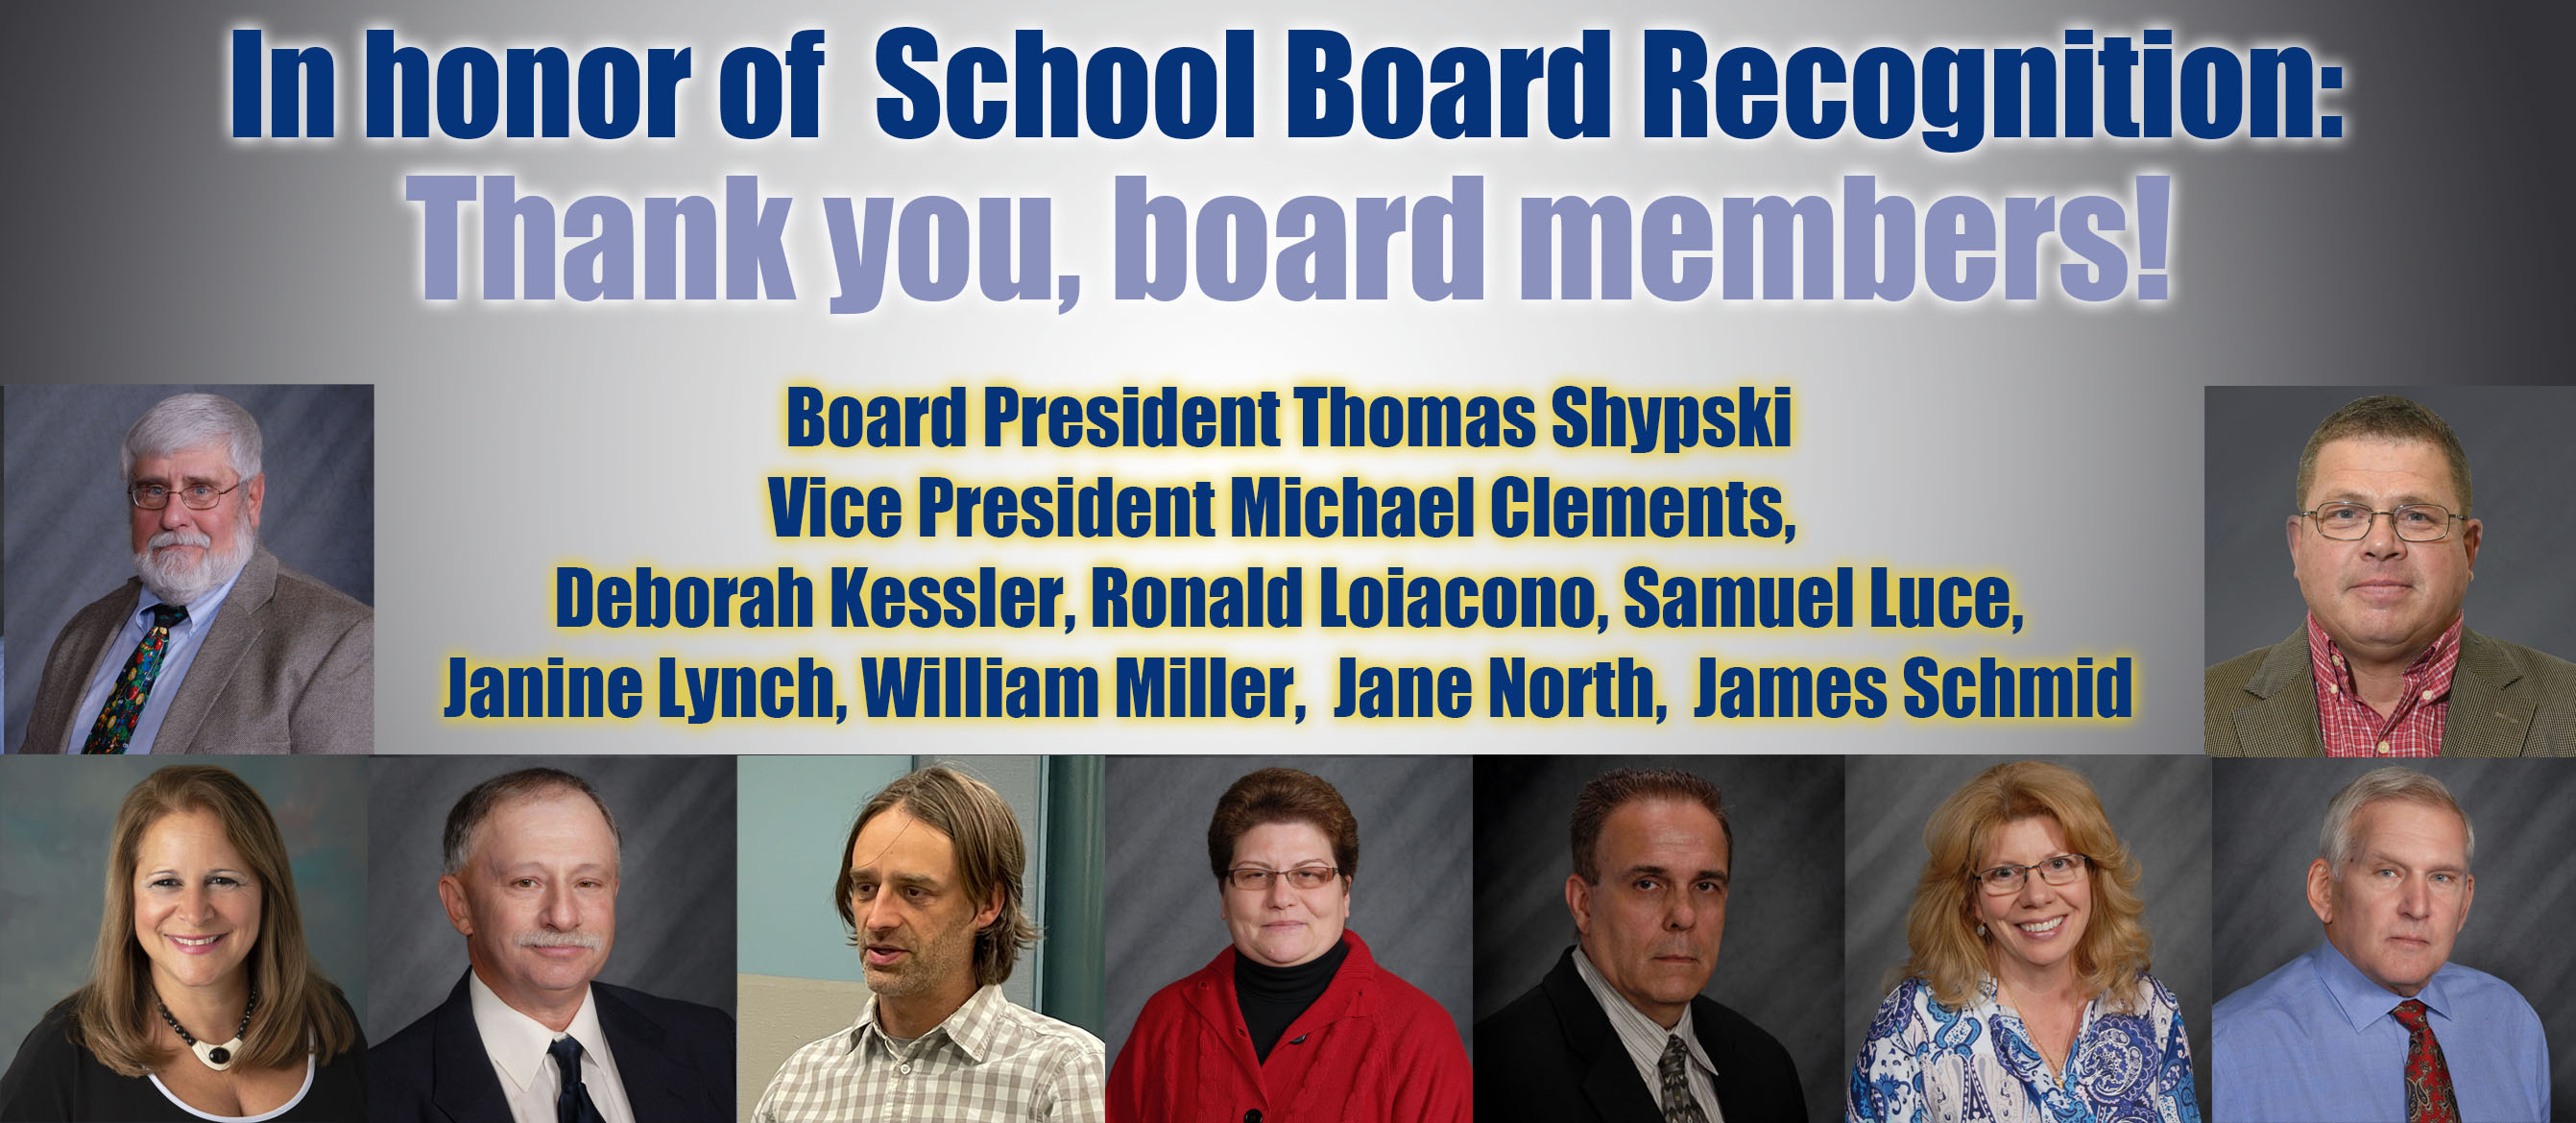 Thank you to Herkimer BOCES Board of Education members for School Board Recognition